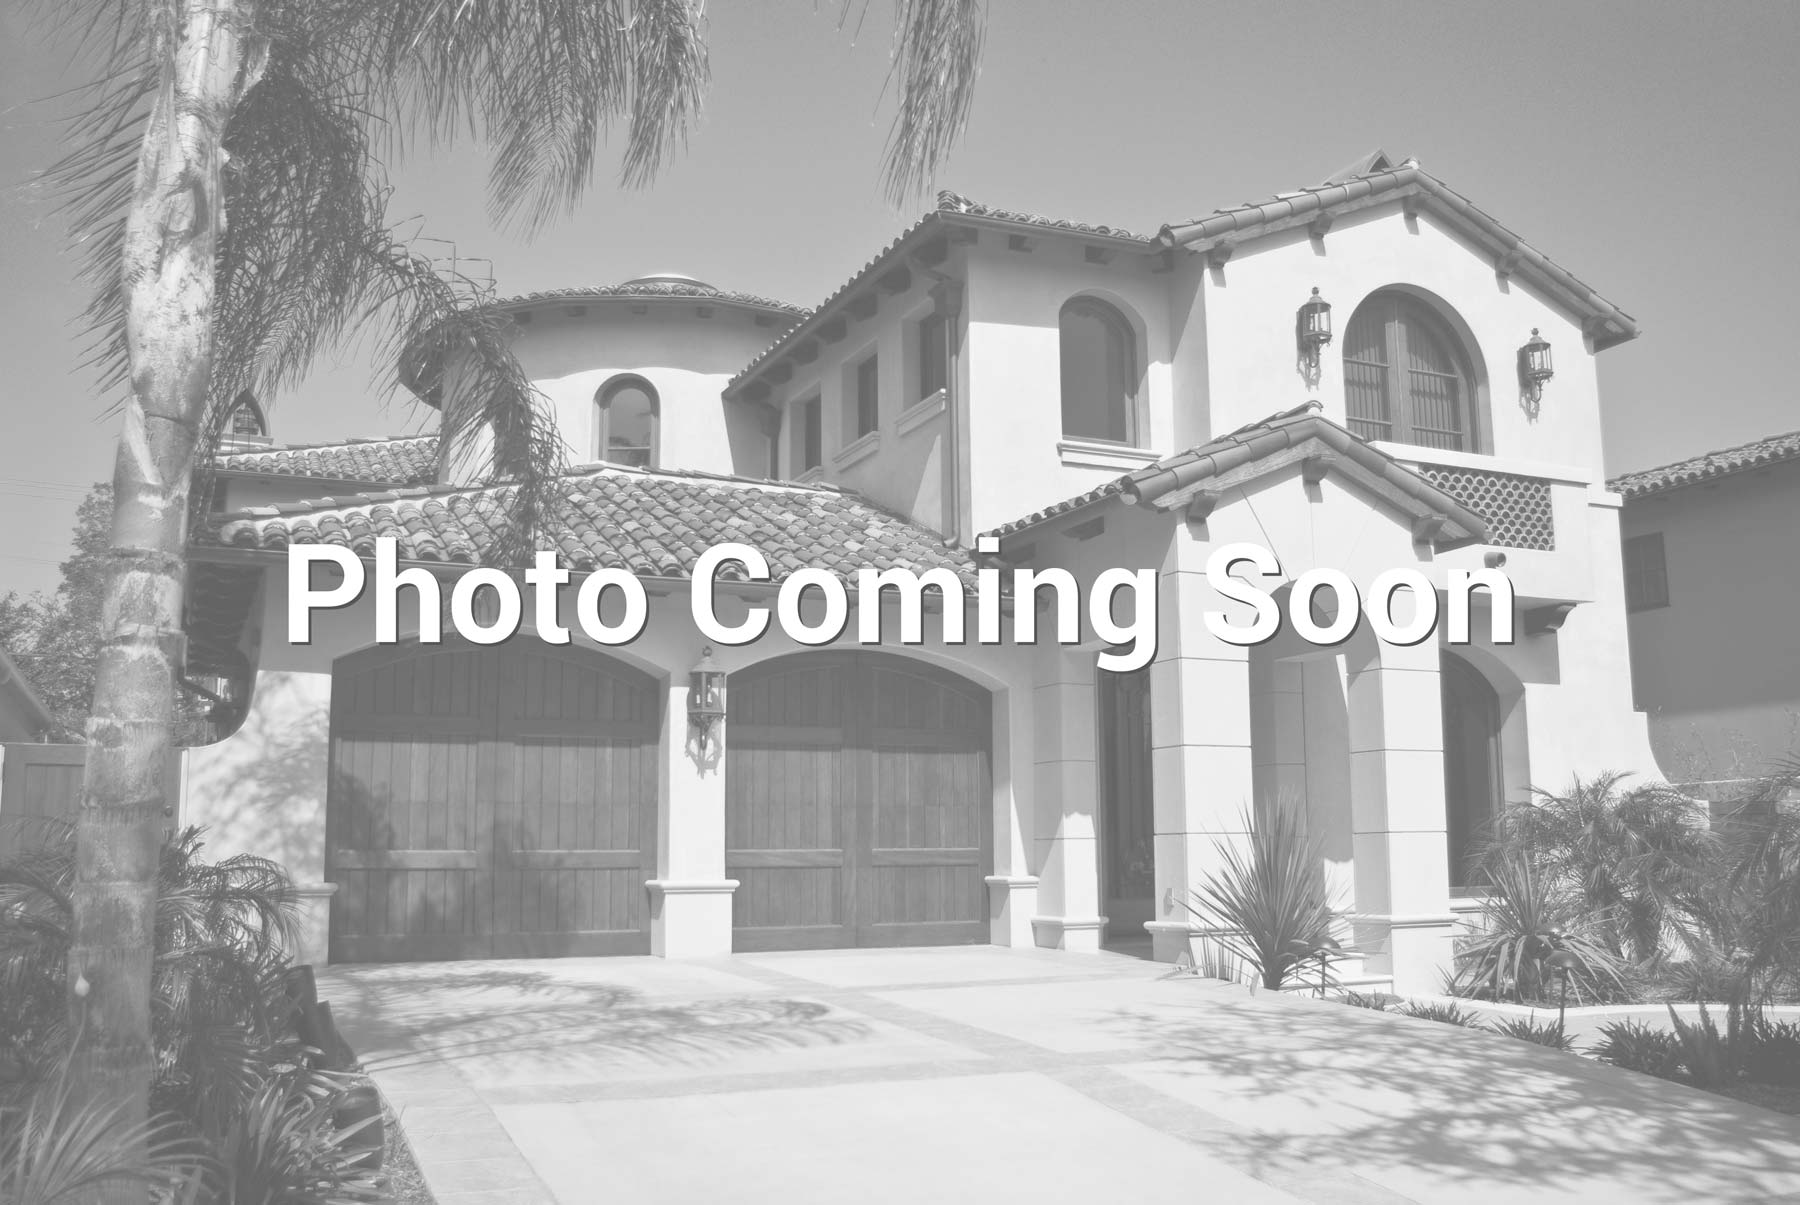 $850,000 - 5Br/4Ba - Home for Sale in Village 10 At Aviano, Phoenix